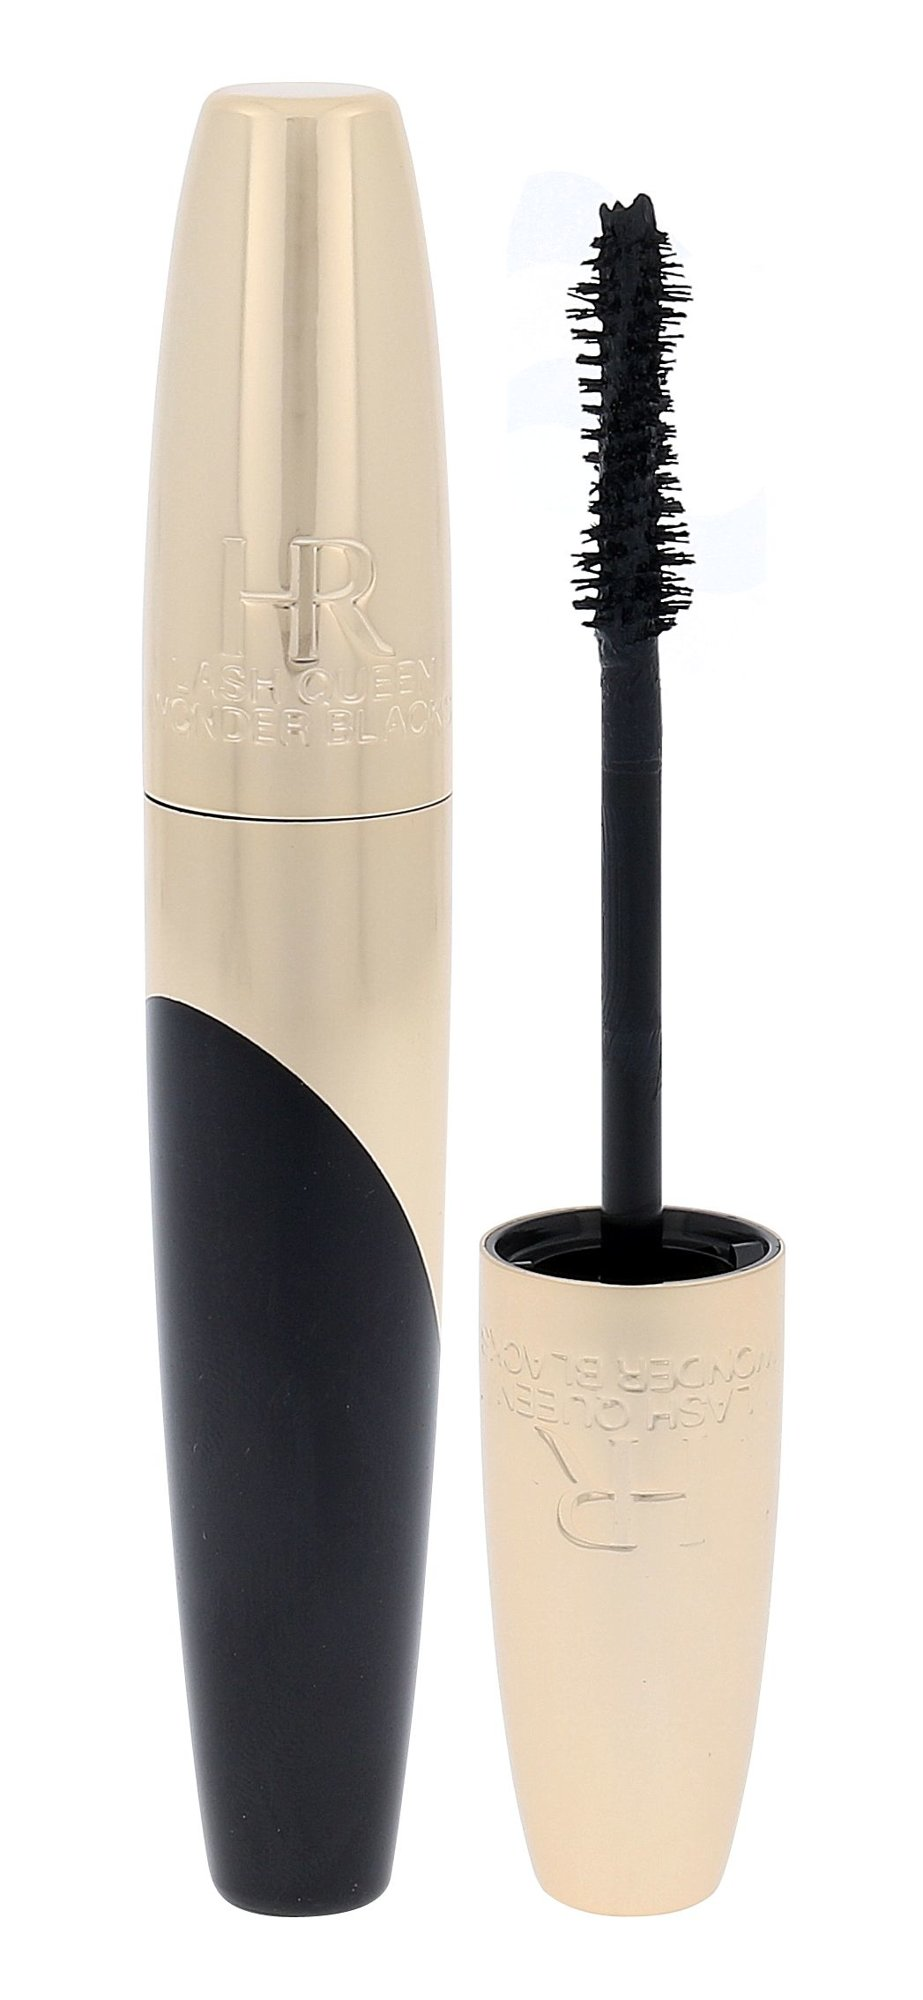 Helena Rubinstein Lash Queen Cosmetic 7ml 01 Wonderful Black Wonder Blacks